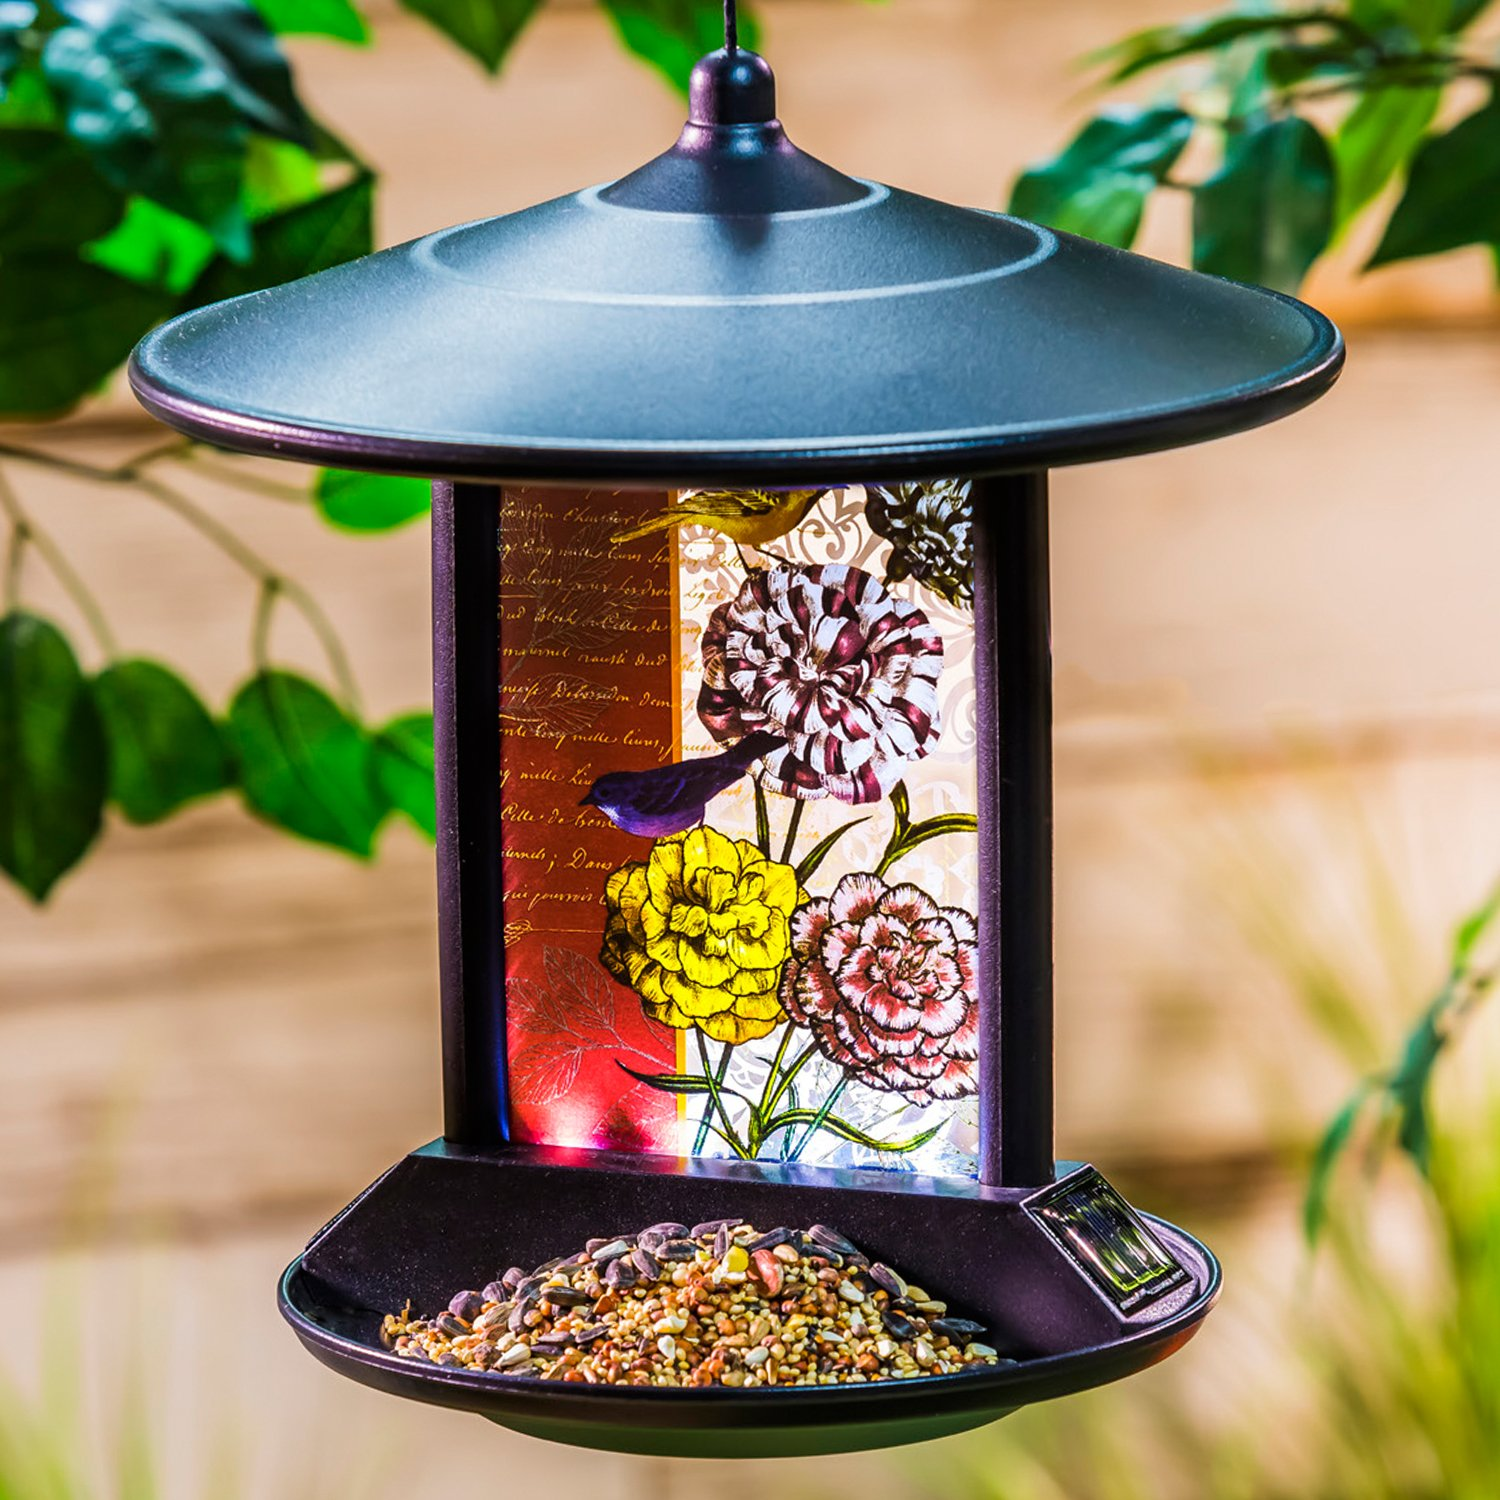 A Ting Solar Powered Hanging Bird Feeder